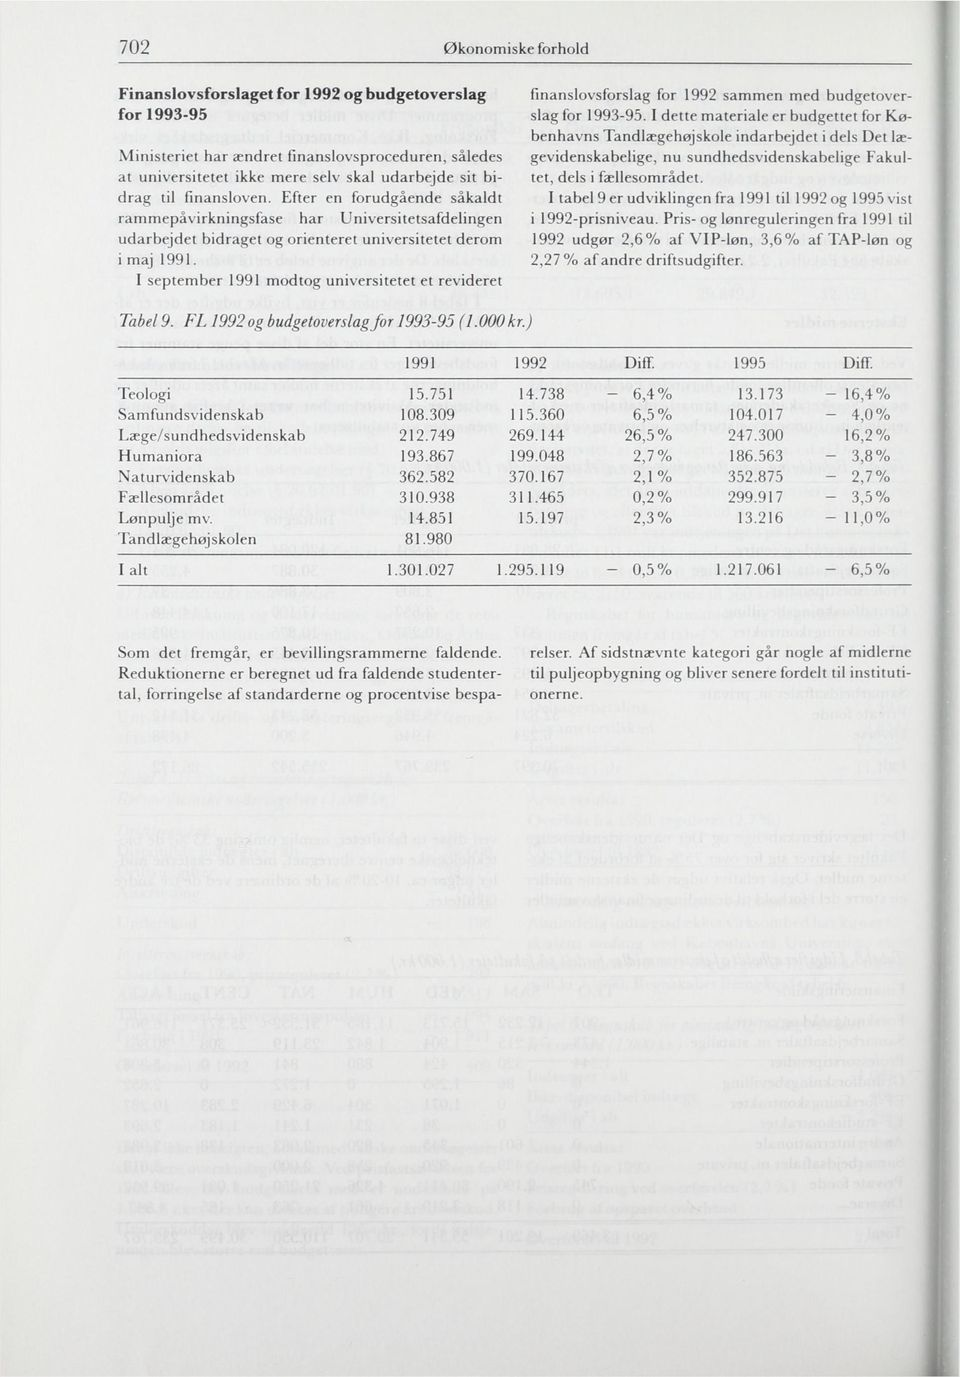 I september 1991 modtog universitetet et revideret finanslovsforslag for 1992 sammen med budgetoverslag for 1993-95.